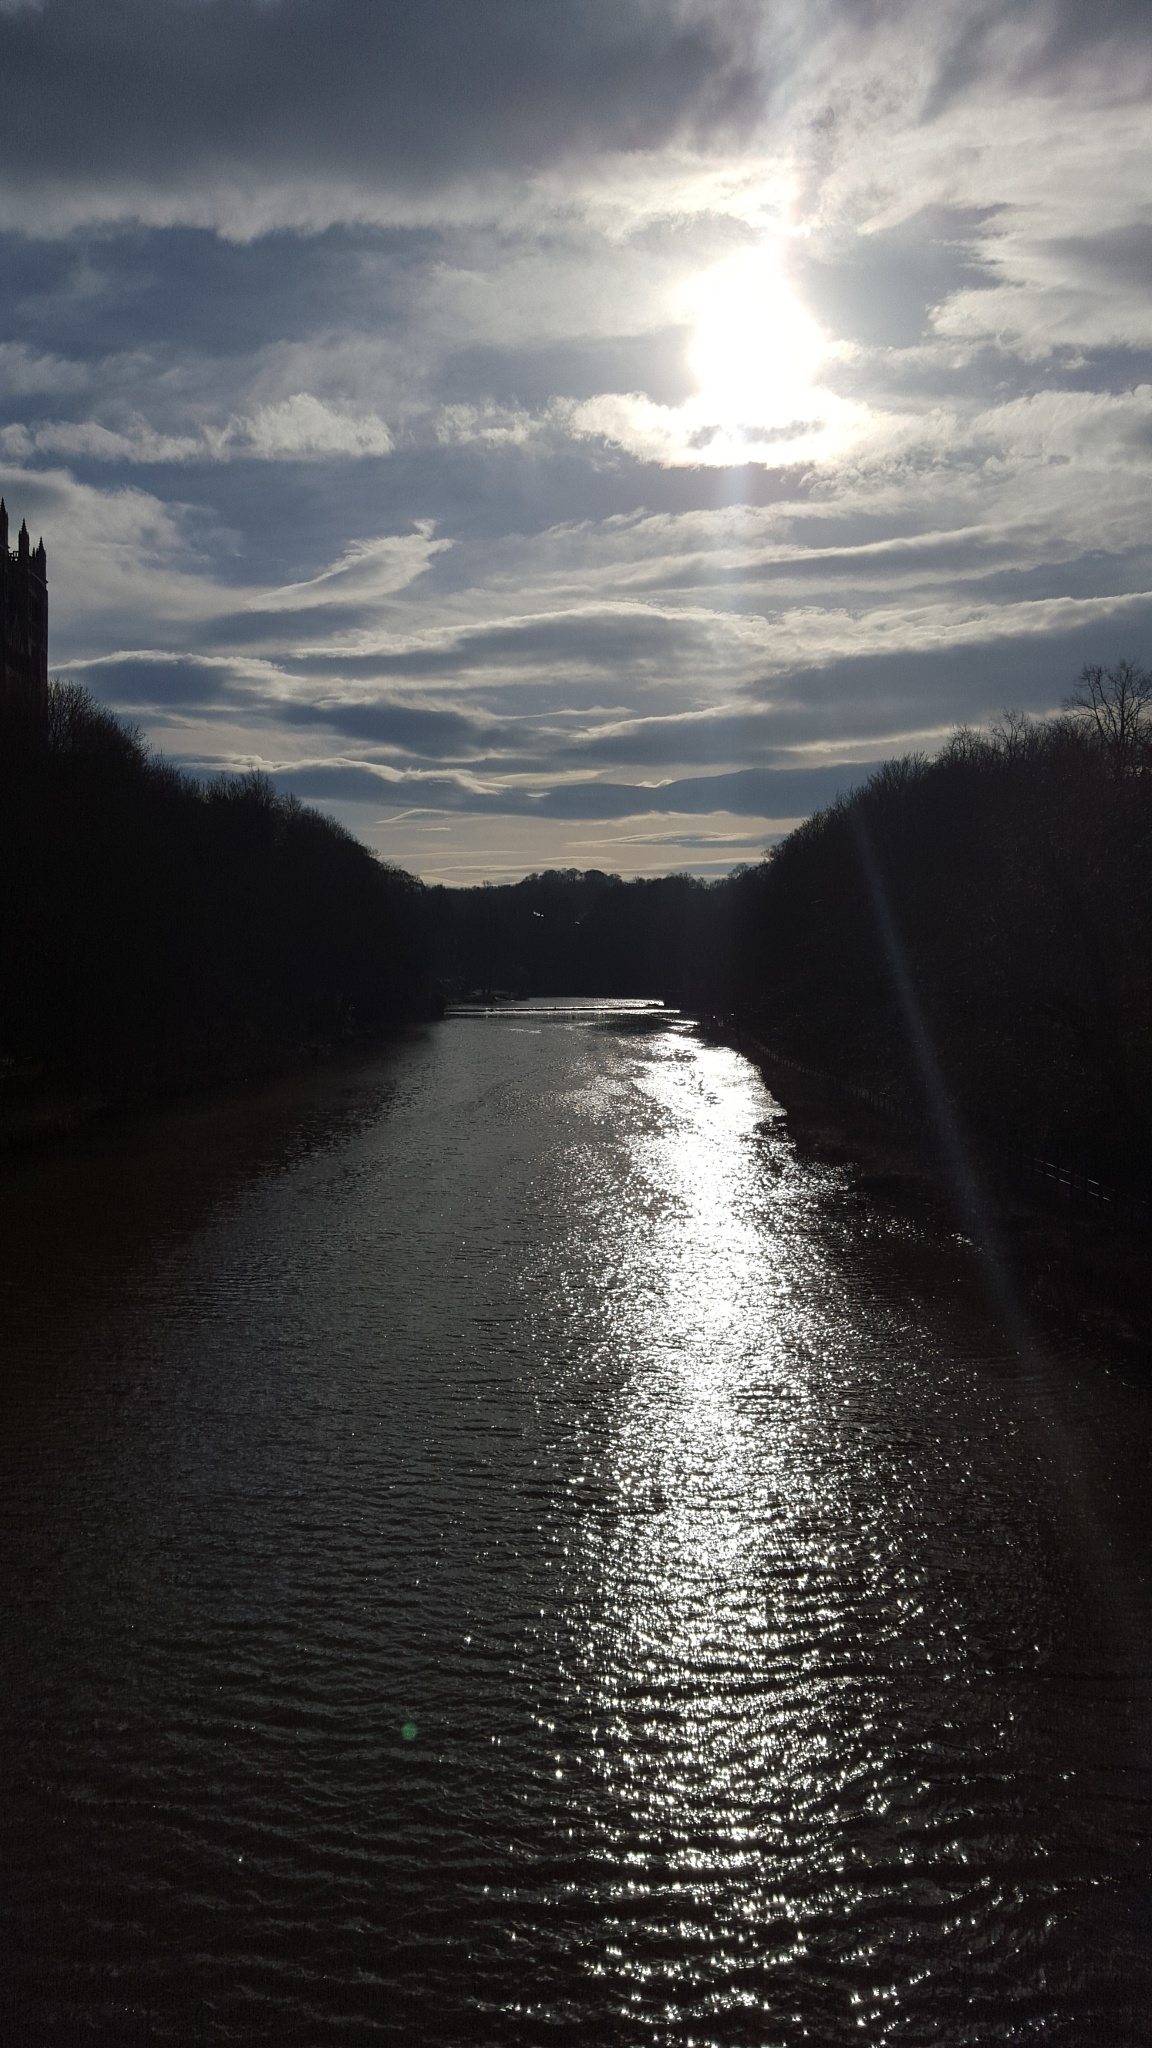 Early evening, River Wear, Durham by Champs